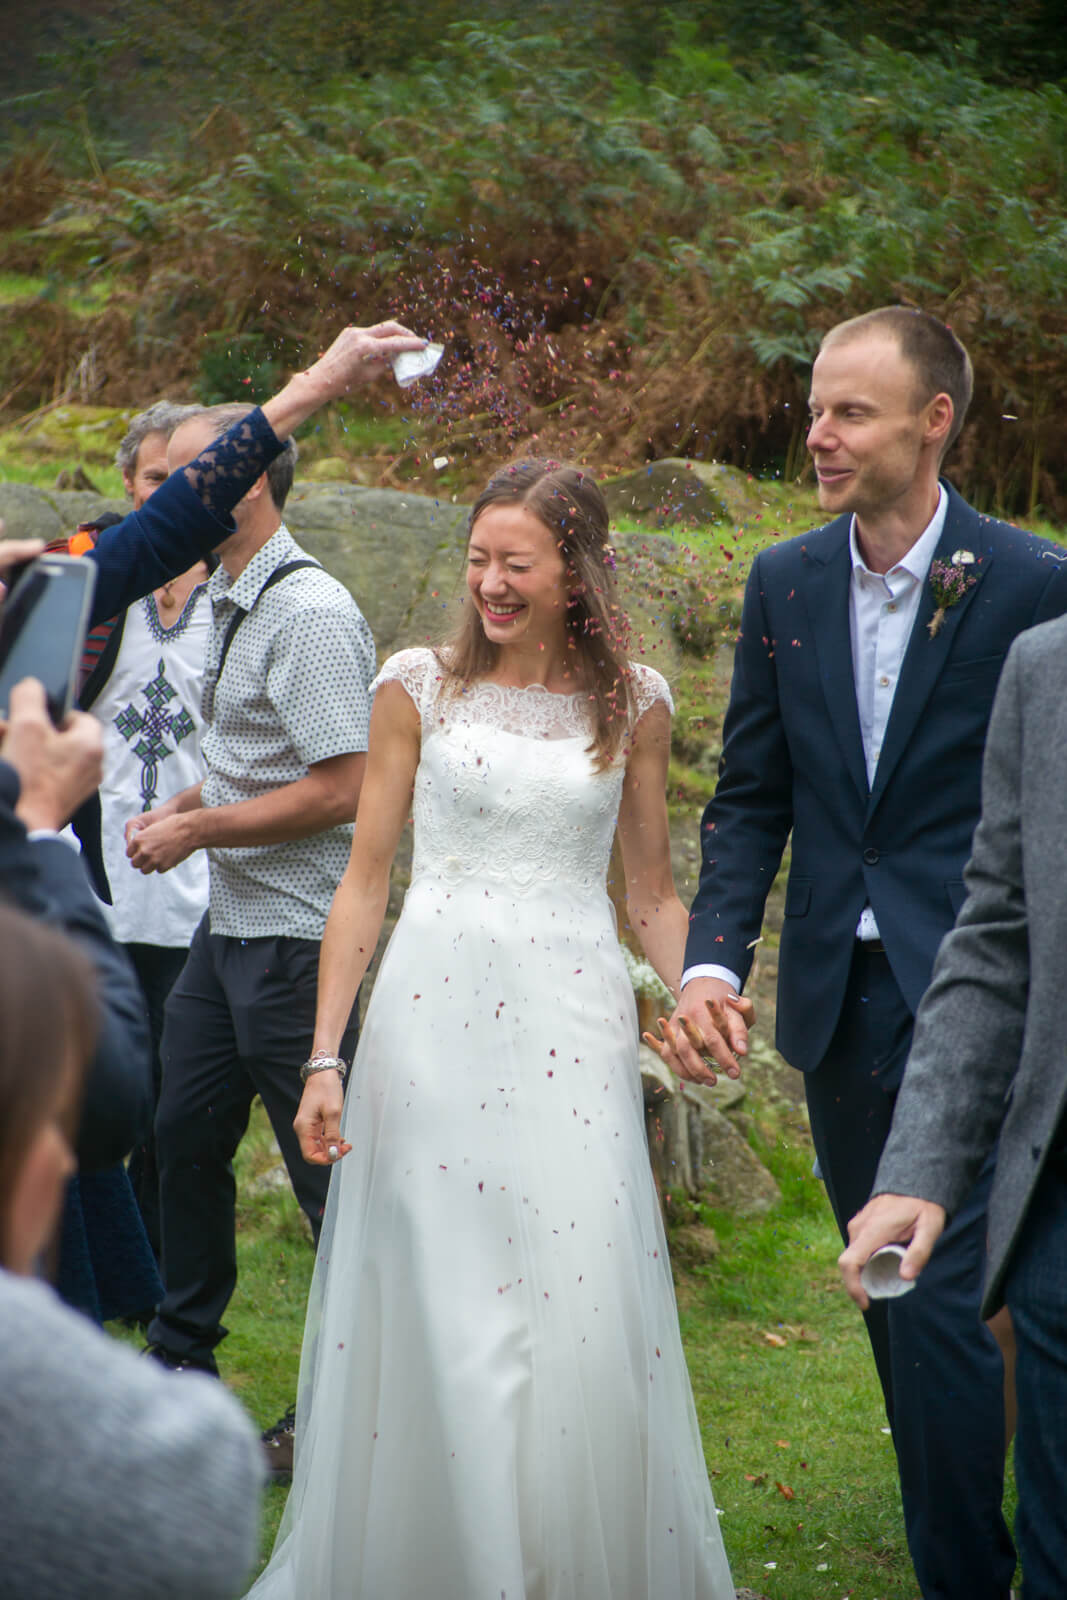 Bride and groom showered with dried petal confetti